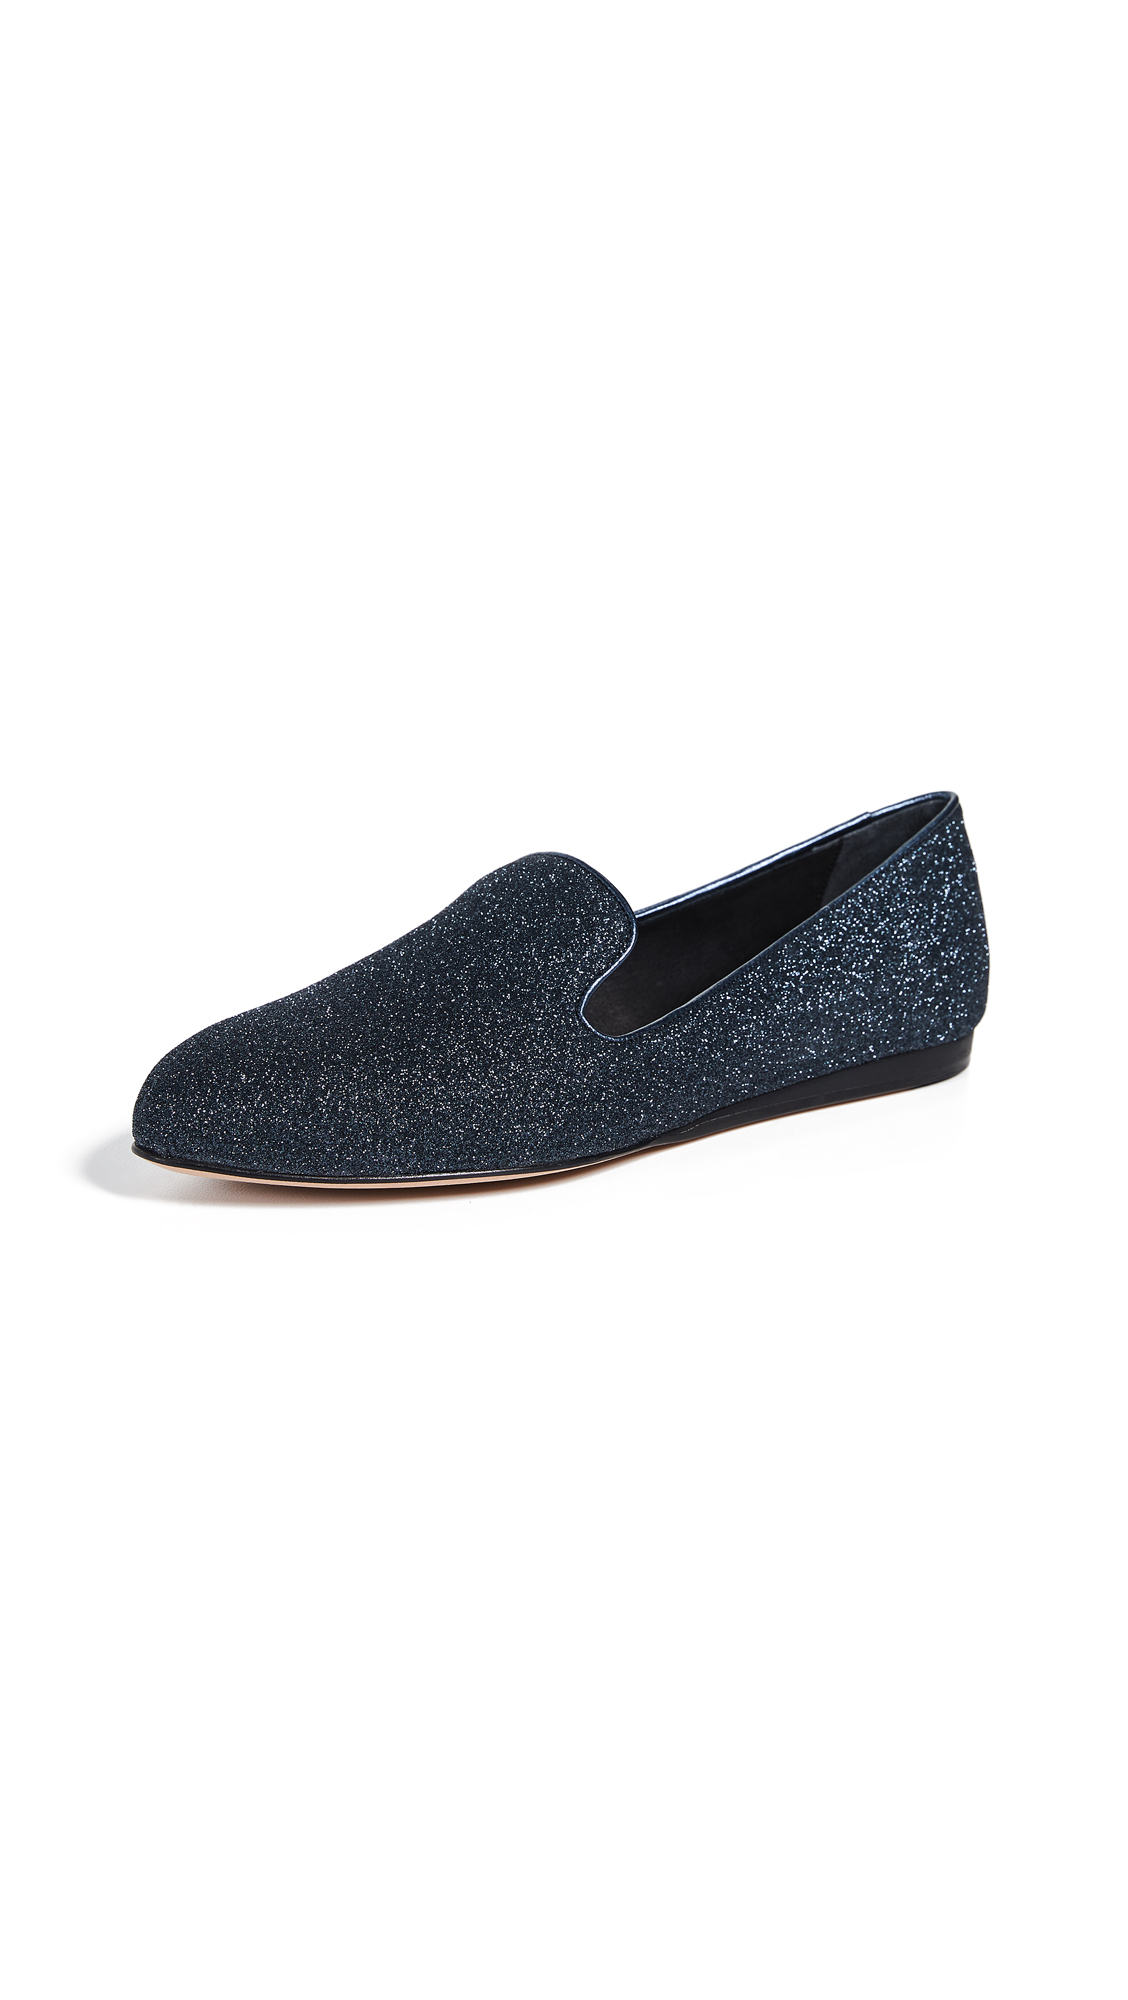 Veronica Beard Griffin Flats - Midnight